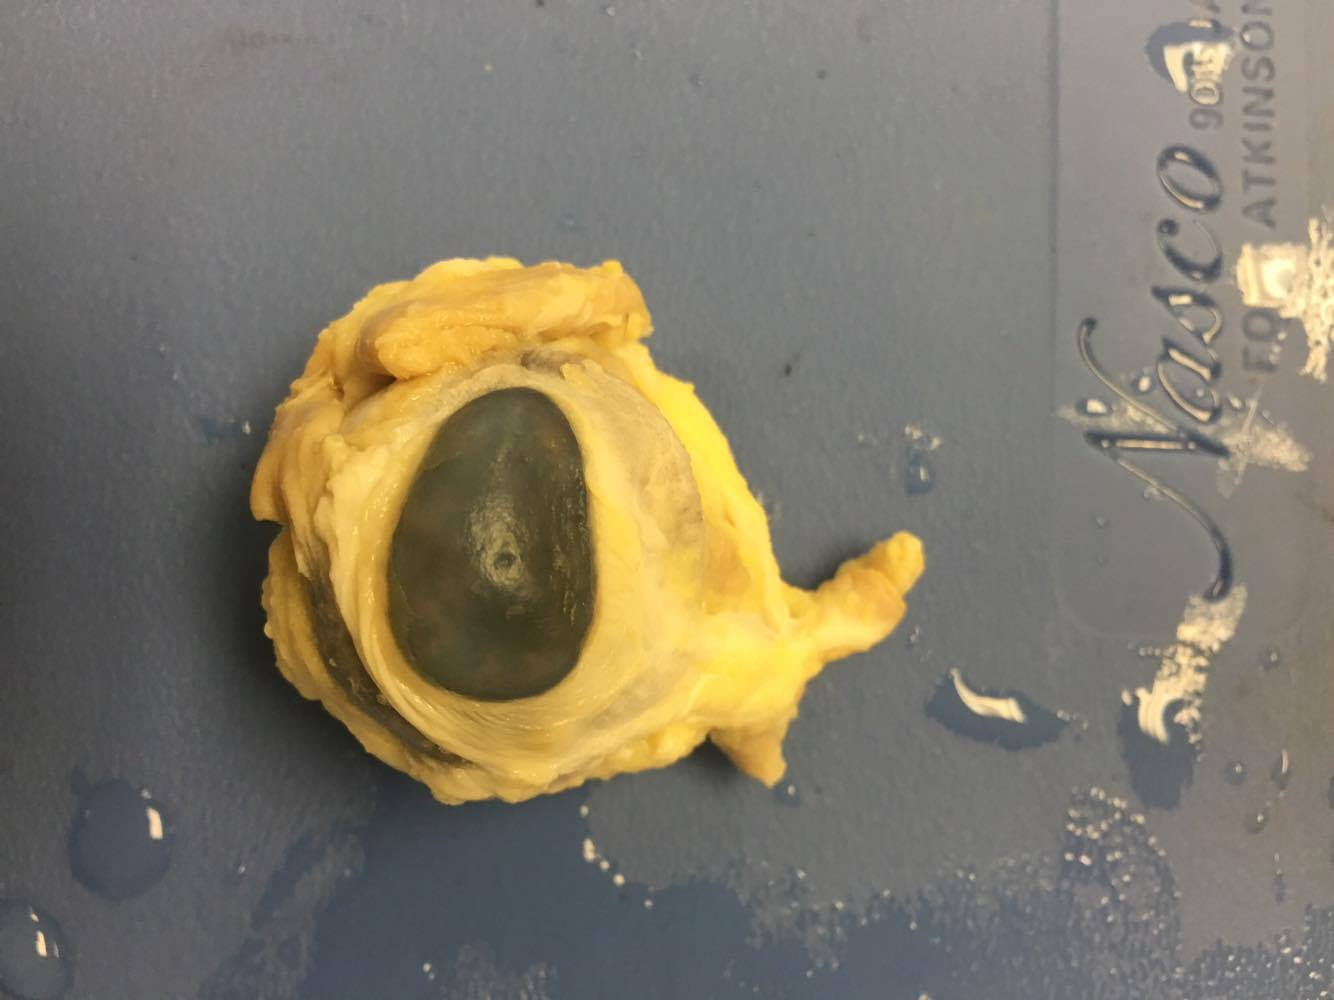 Anatomy and Physiology Blog: Sheep Eye Dissection